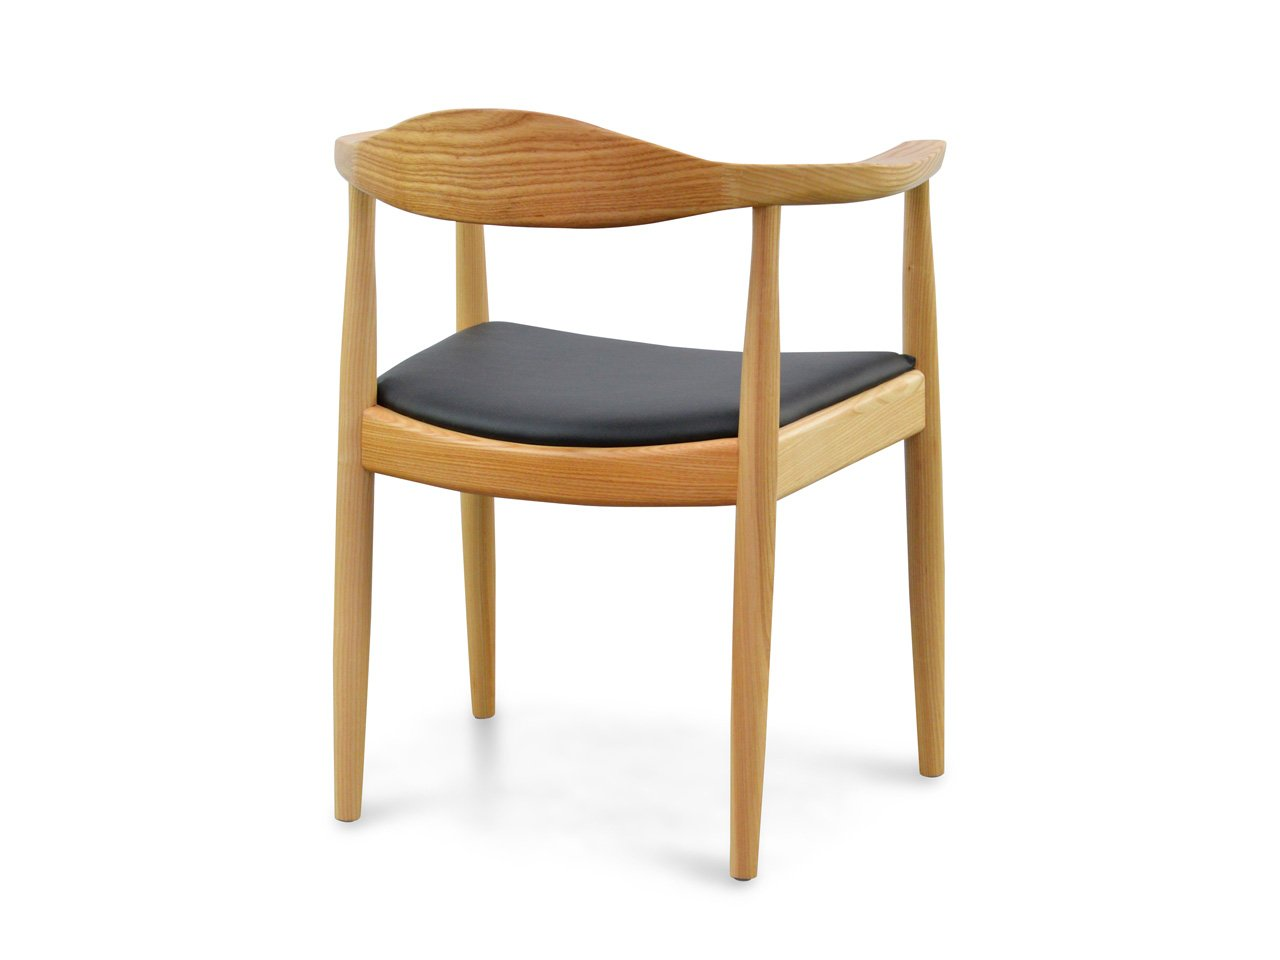 clearance pp503 round dining armchair hans wegner replica natural